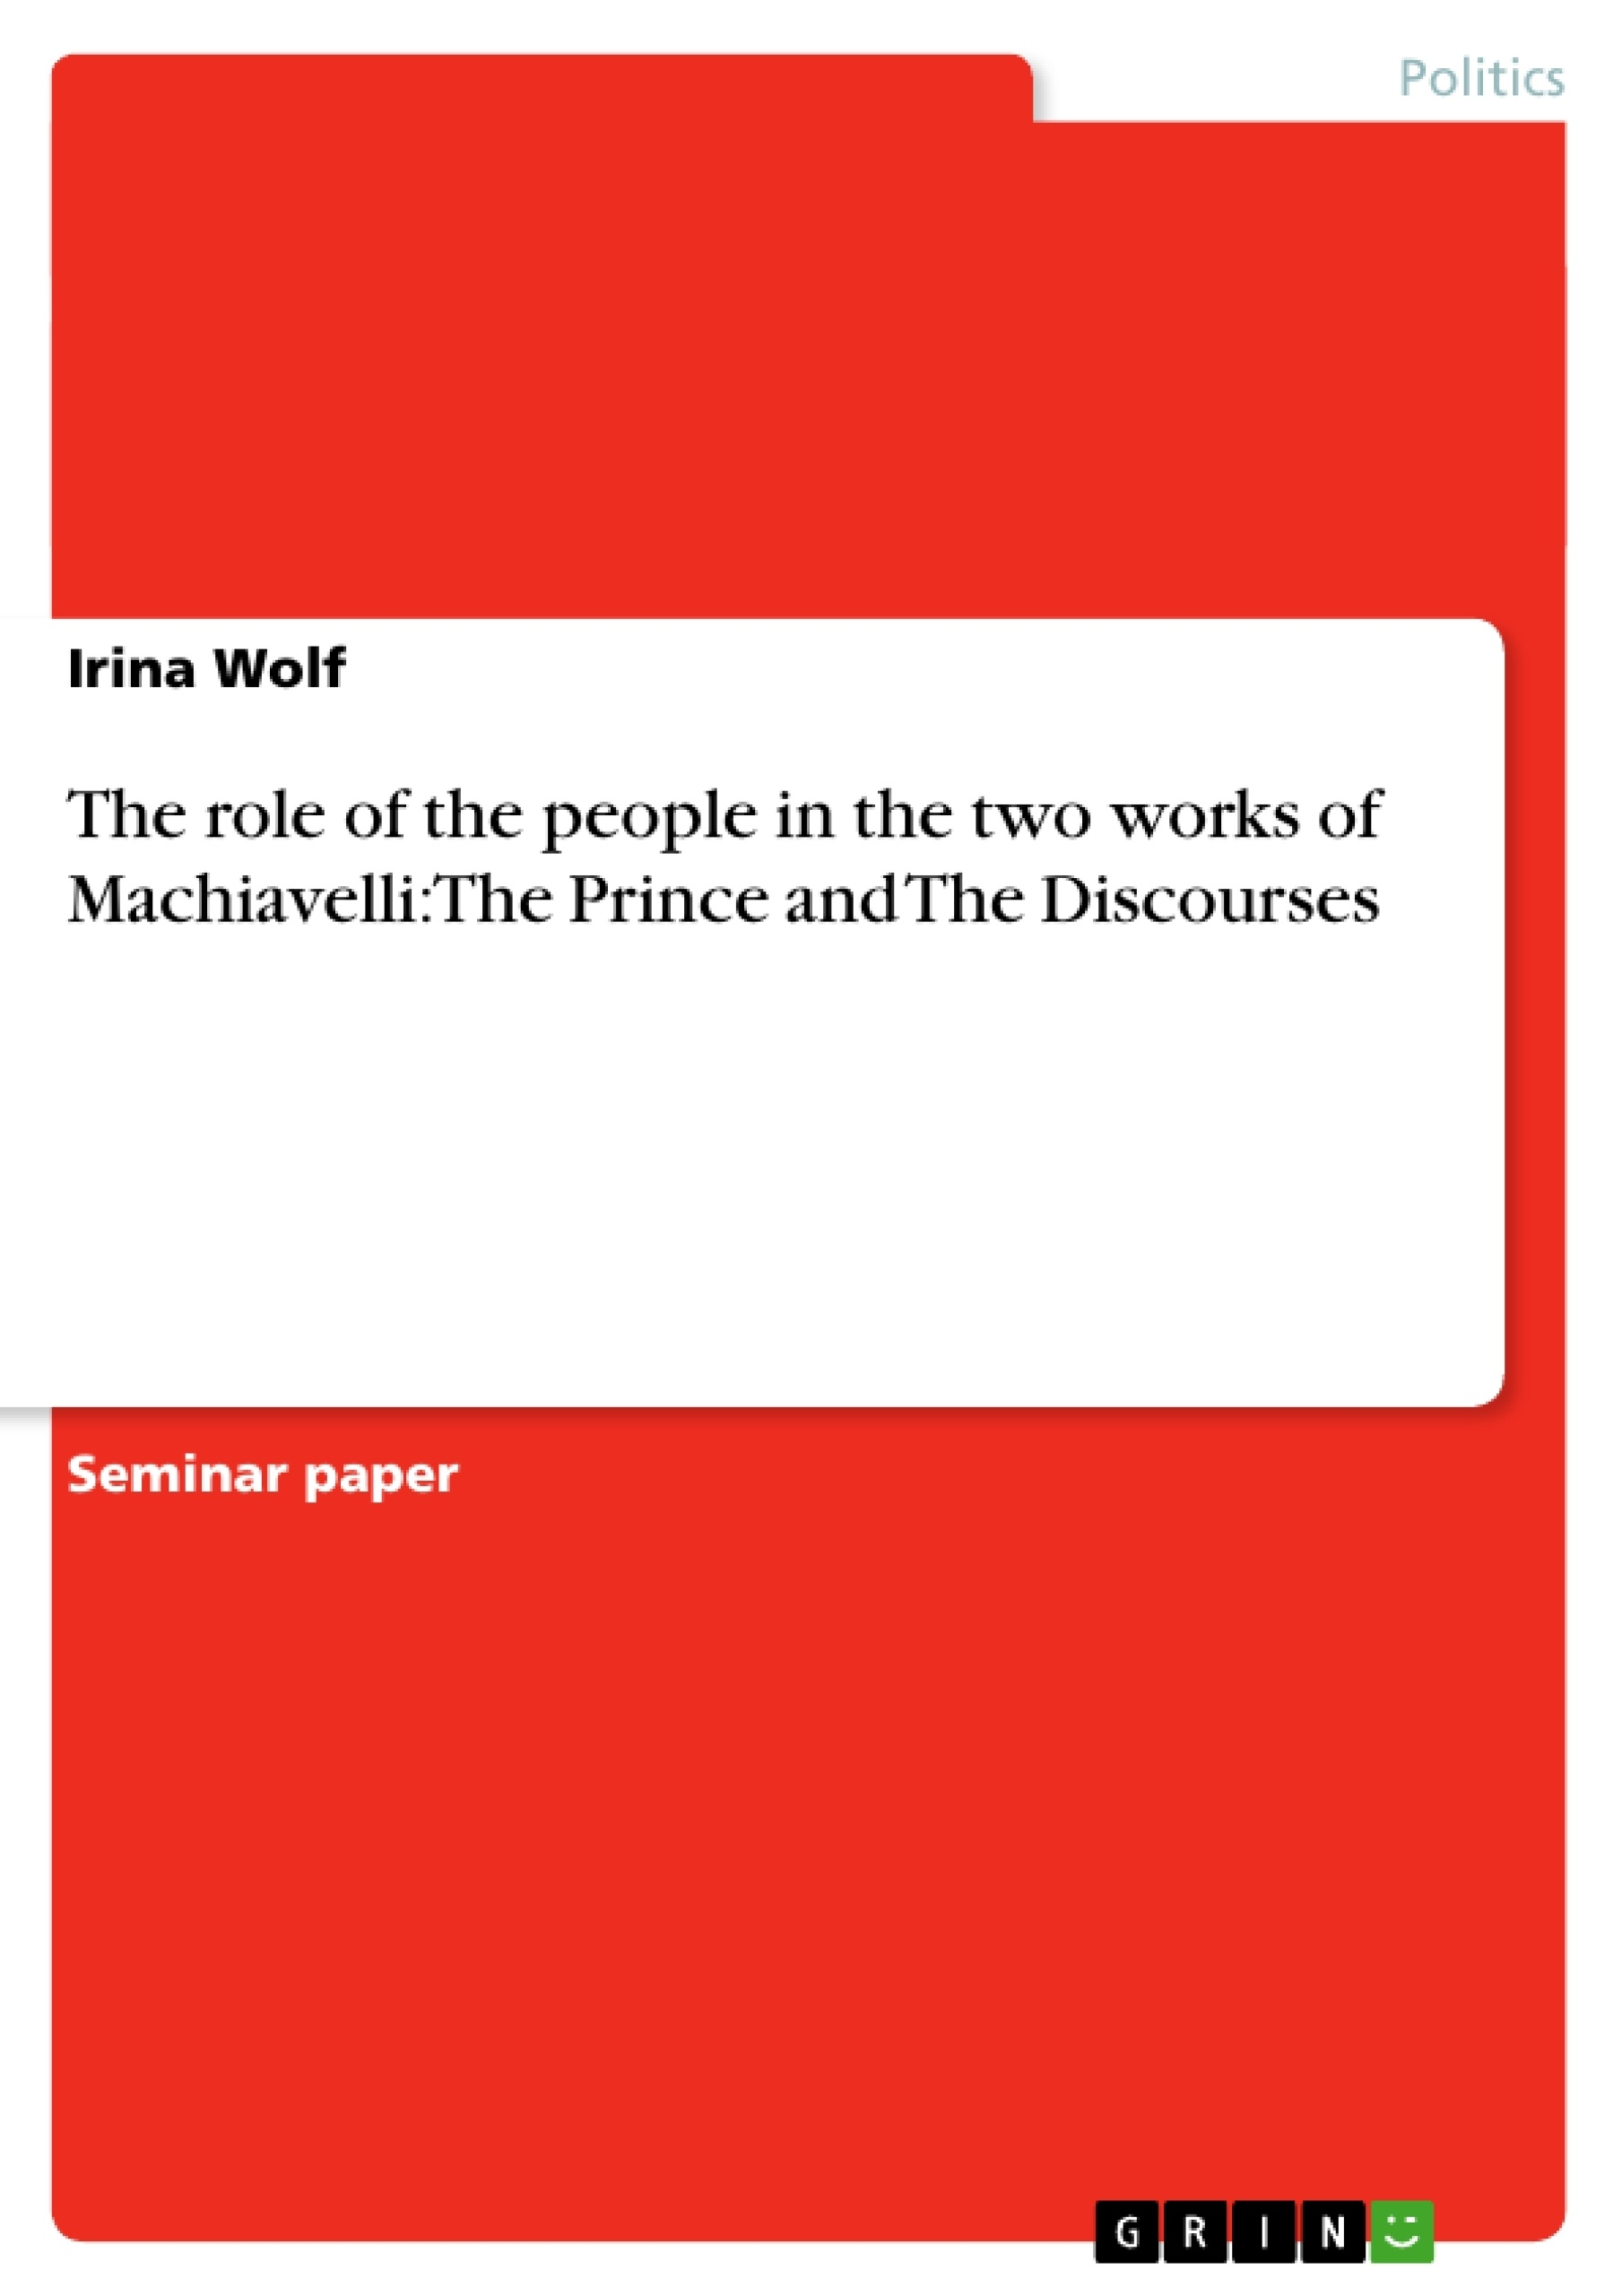 the role of the people in the two works of machiavelli the prince  upload your own papers earn money and win an iphone x